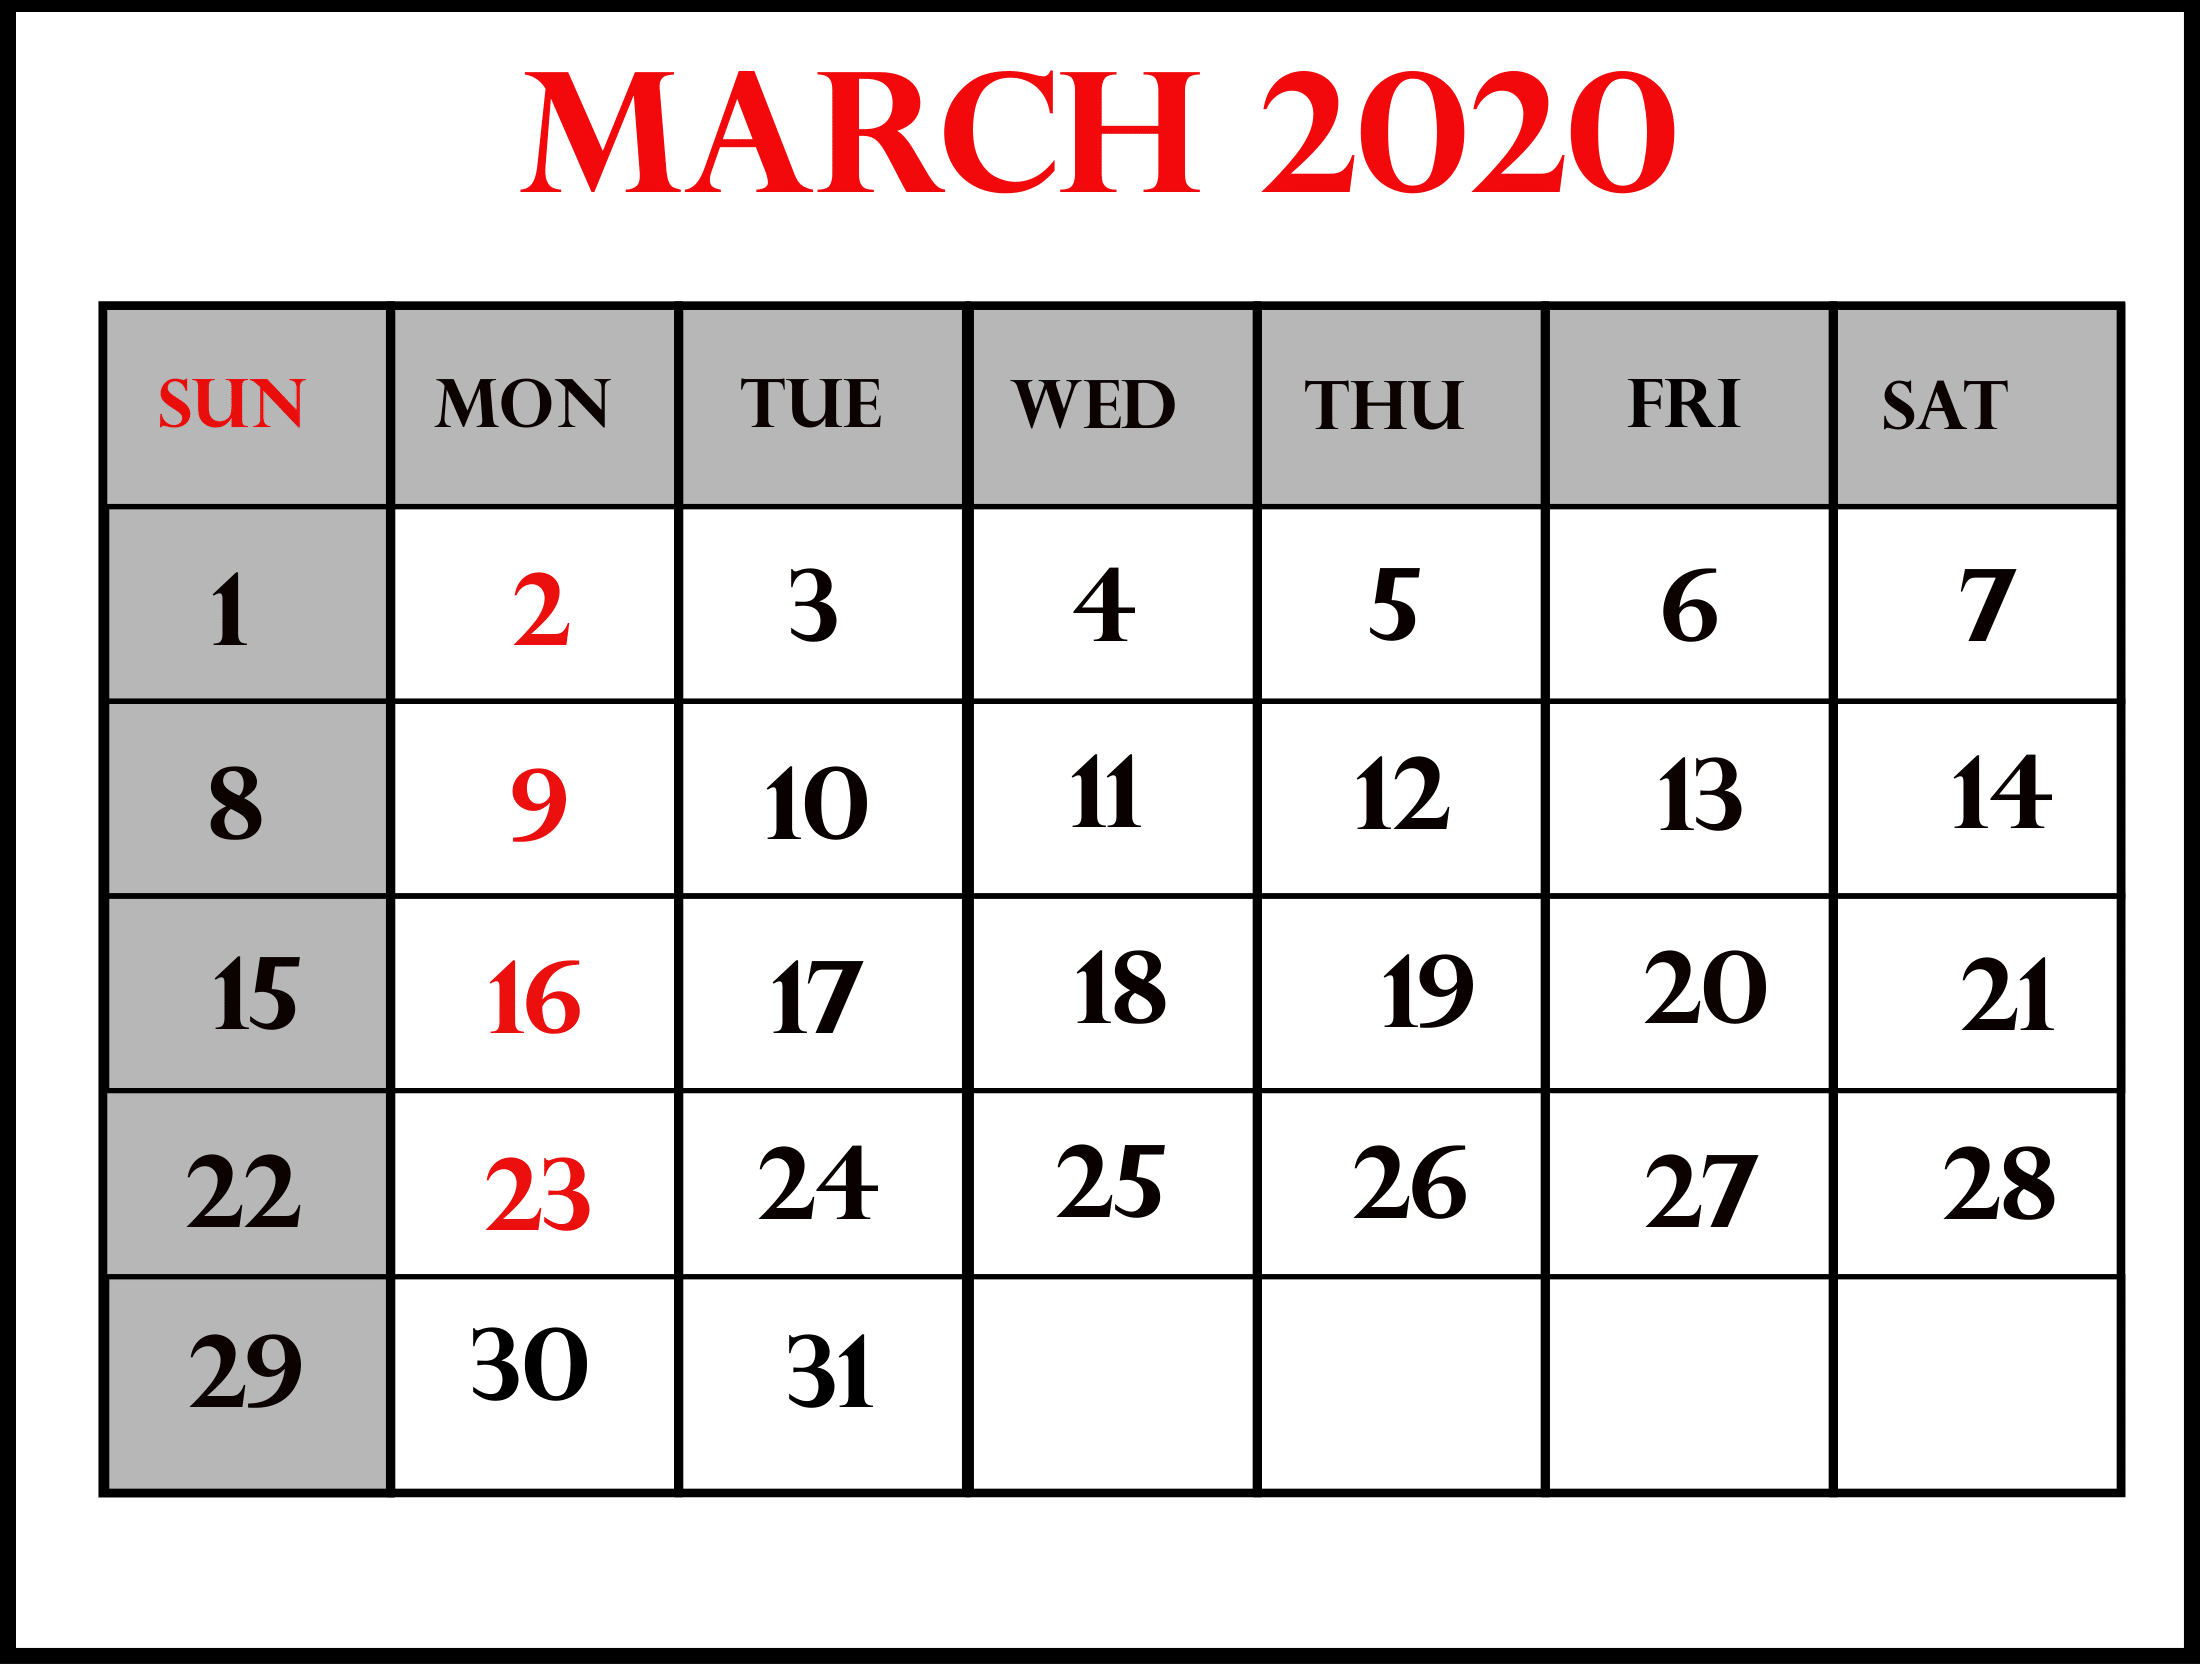 March 2020 Calendar Us Federal Holidays List | Free